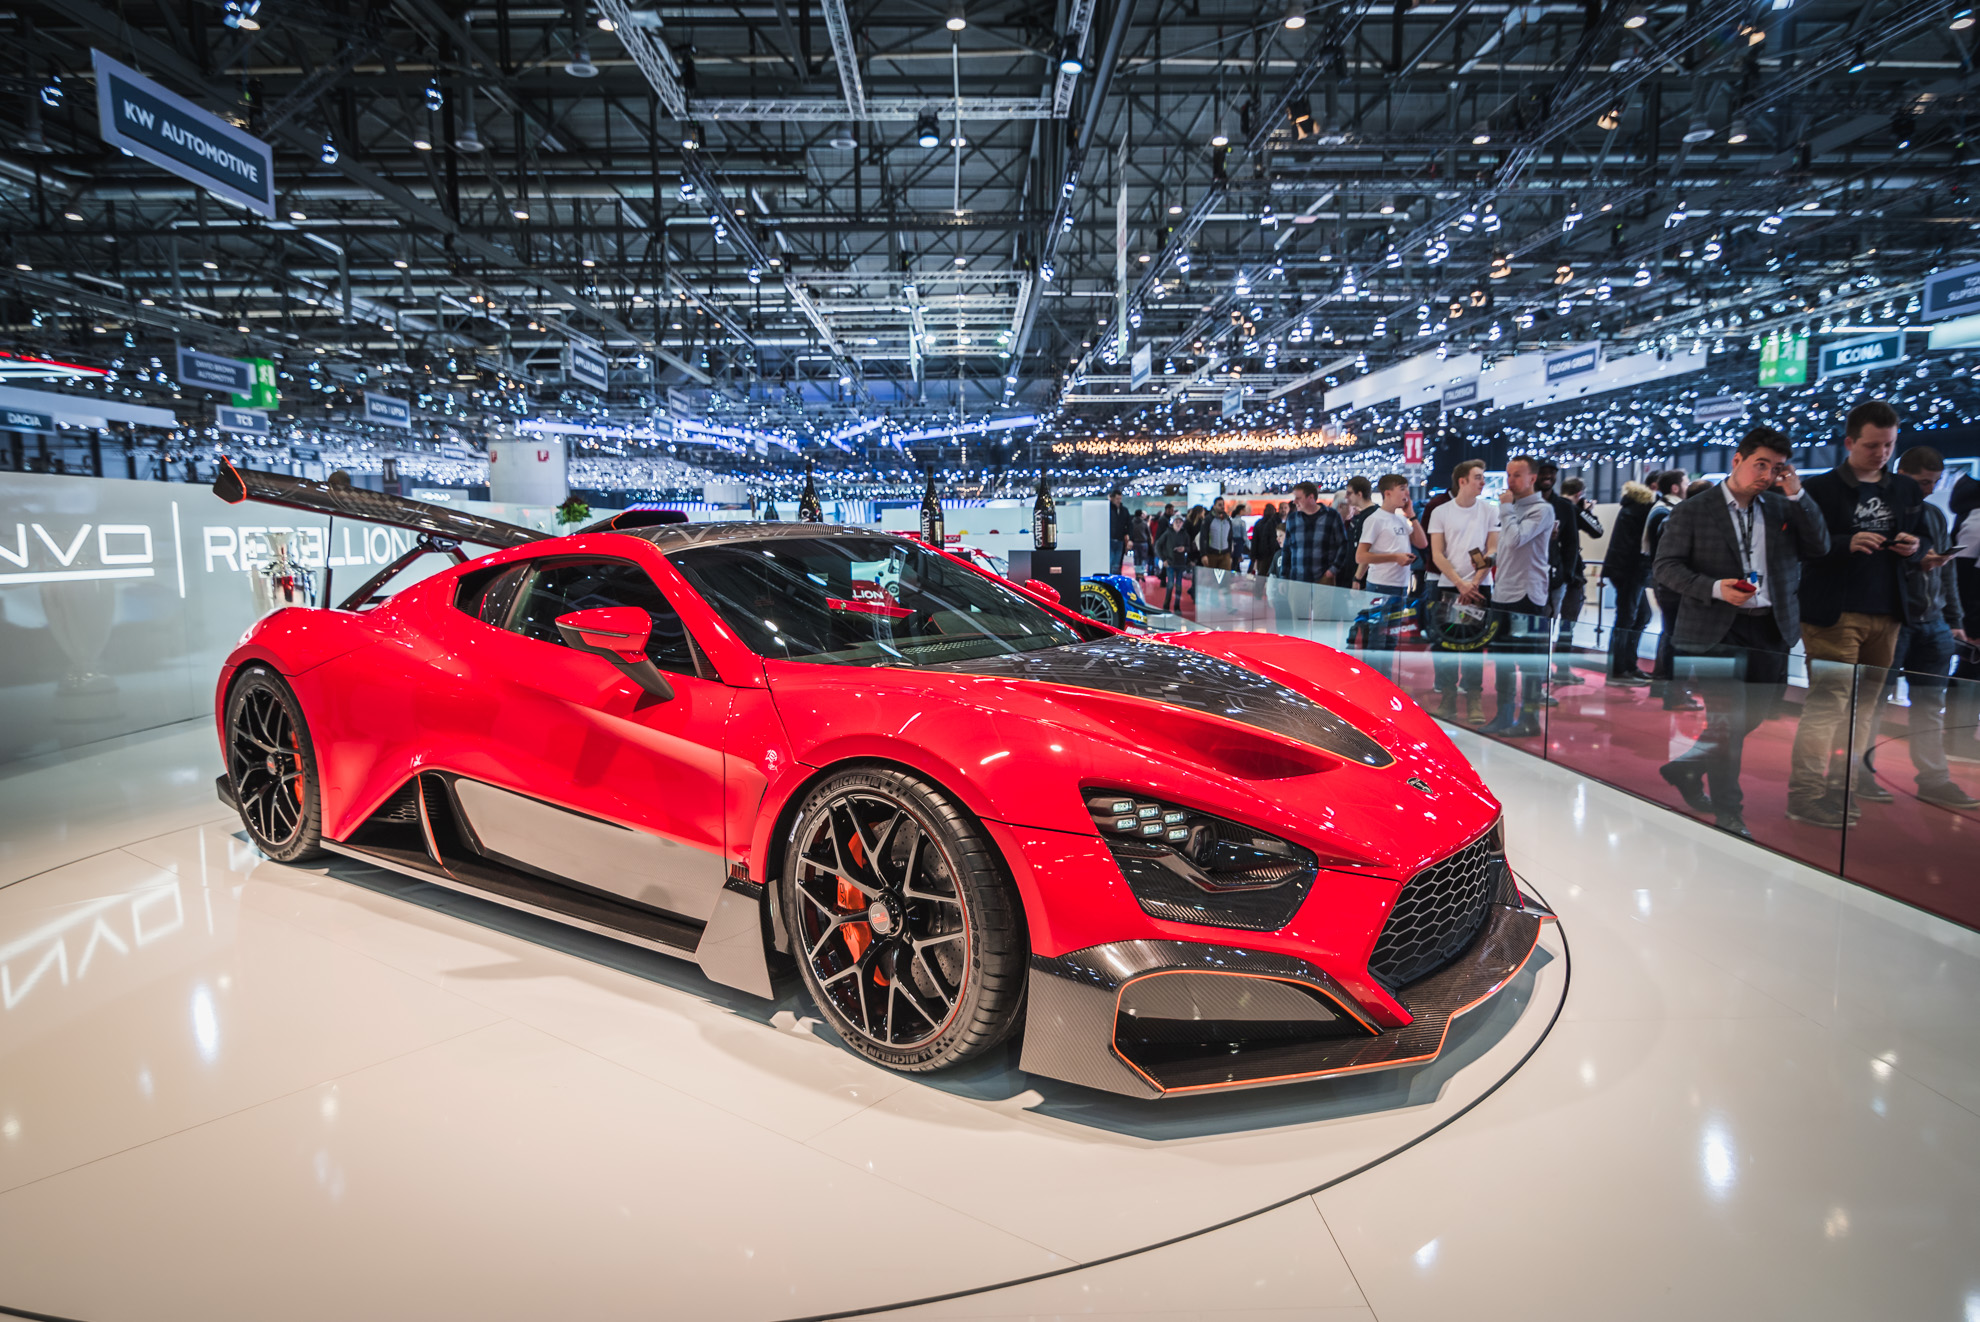 geneva-international-motor-show-igors-sinitsins-9